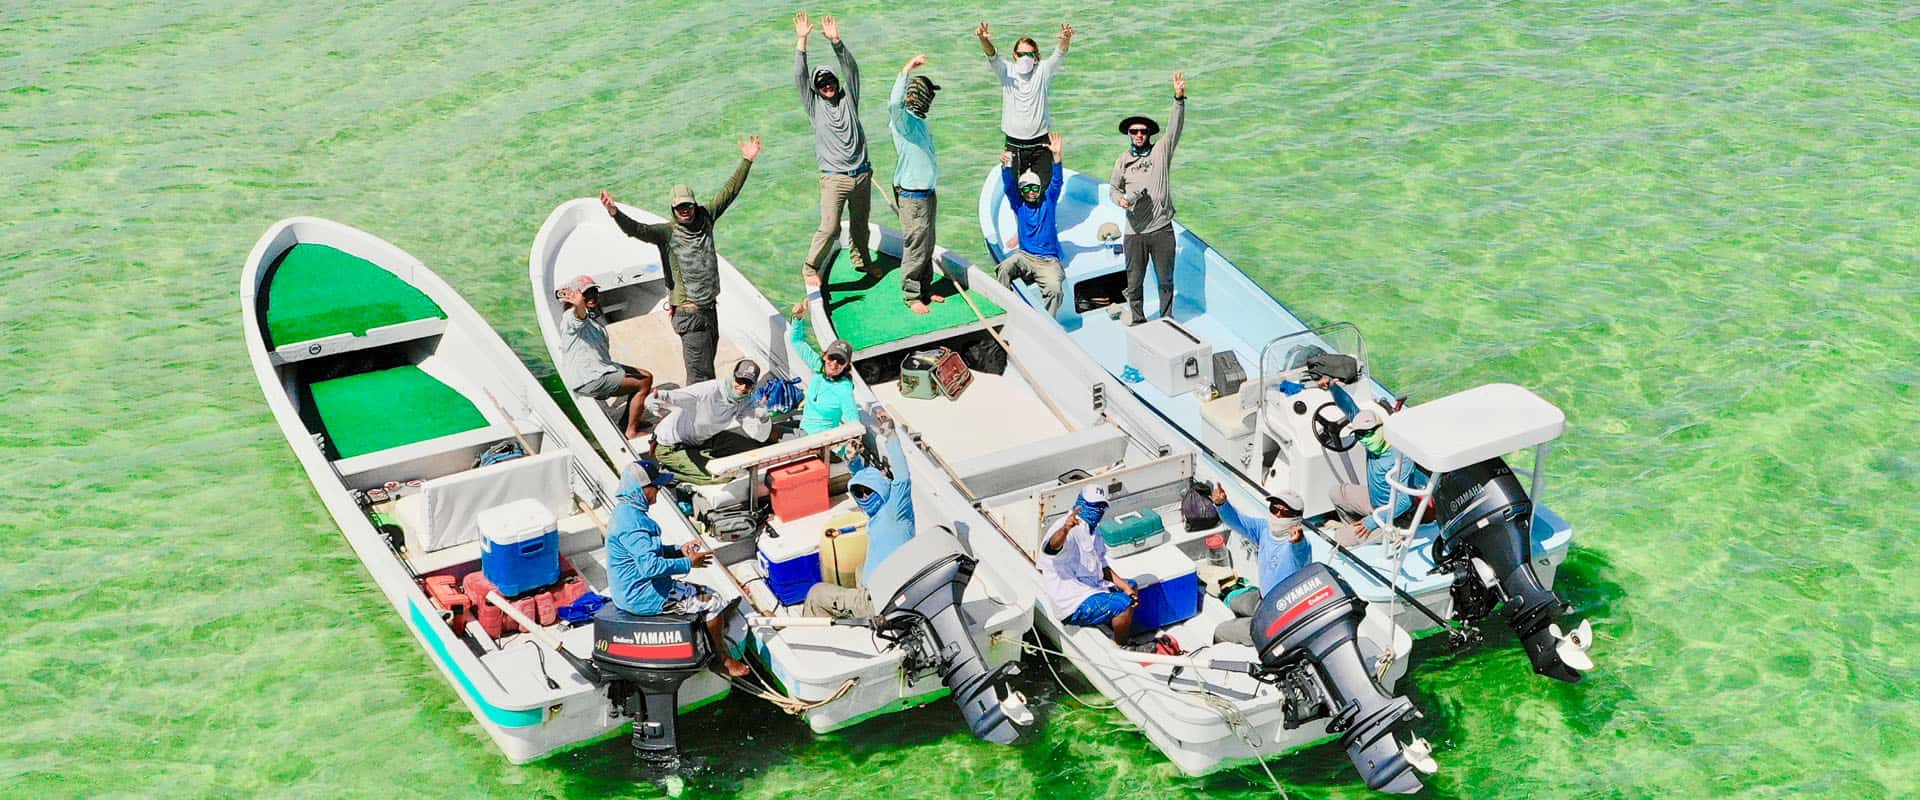 The Xflats Saltwater Fly-Fishing Guides of Xcalak, Mexico